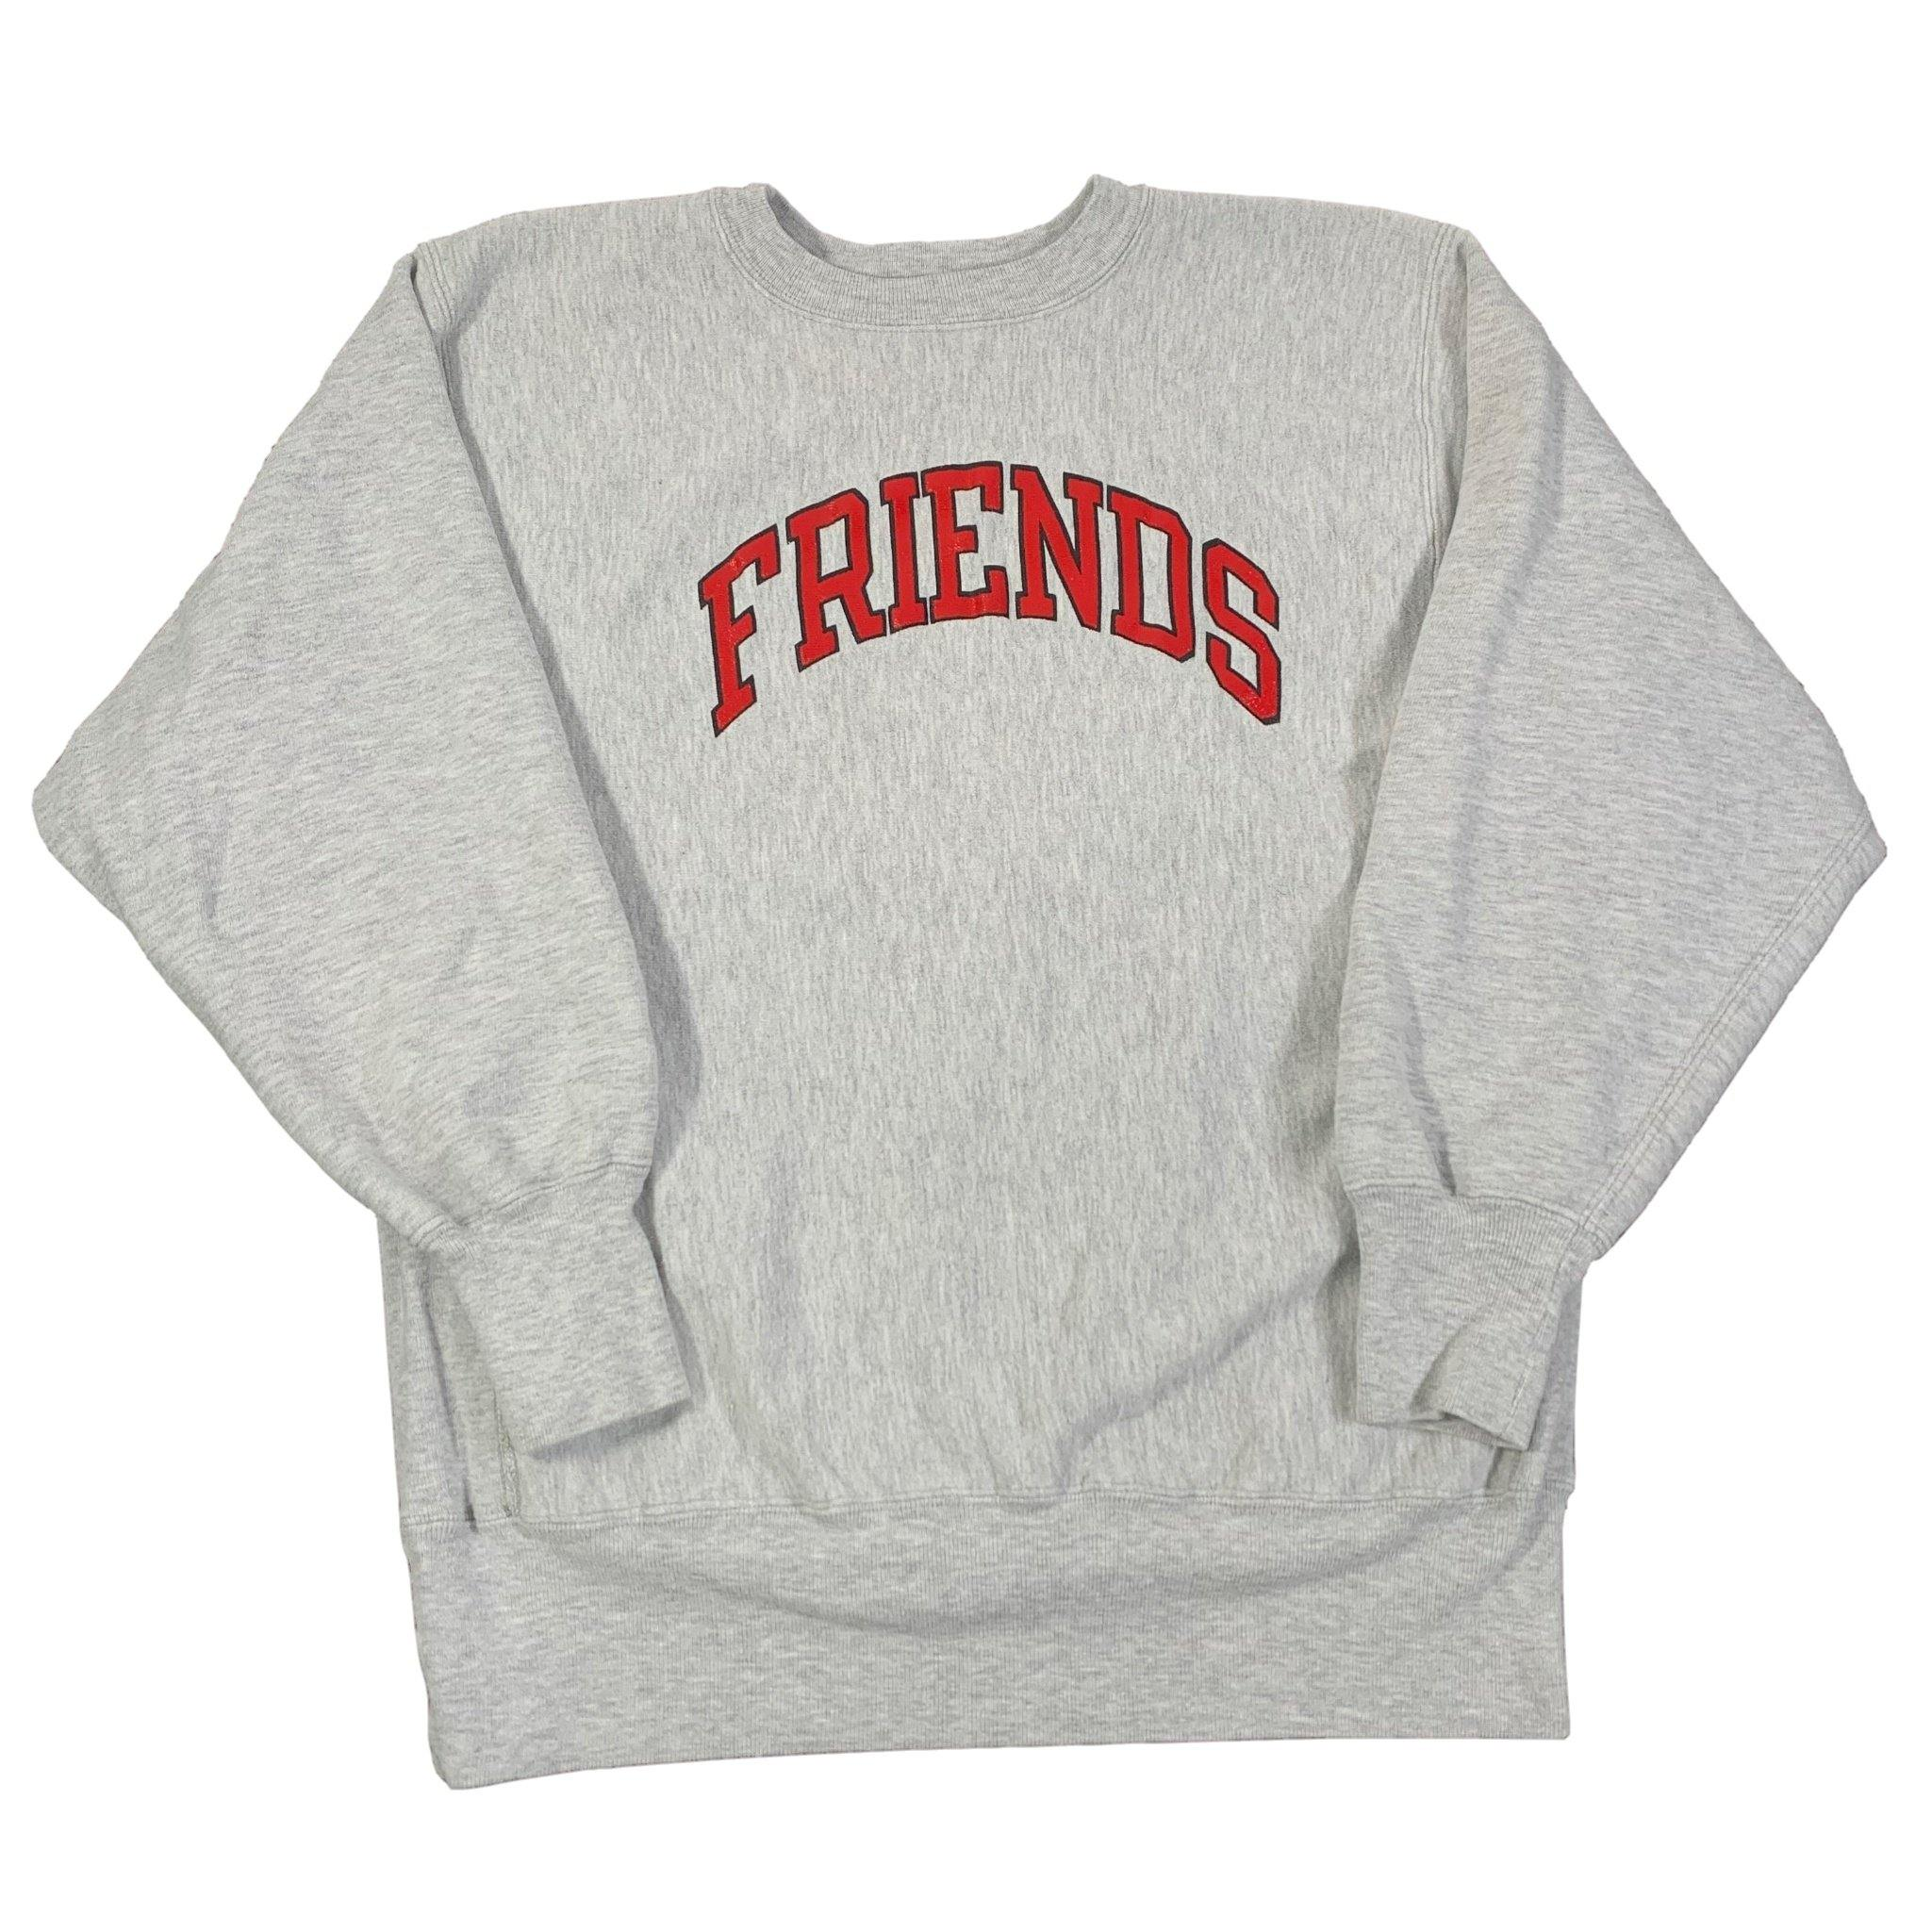 "Vintage Champion Reverse Weave ""Friends"" Crewneck Sweatshirt"